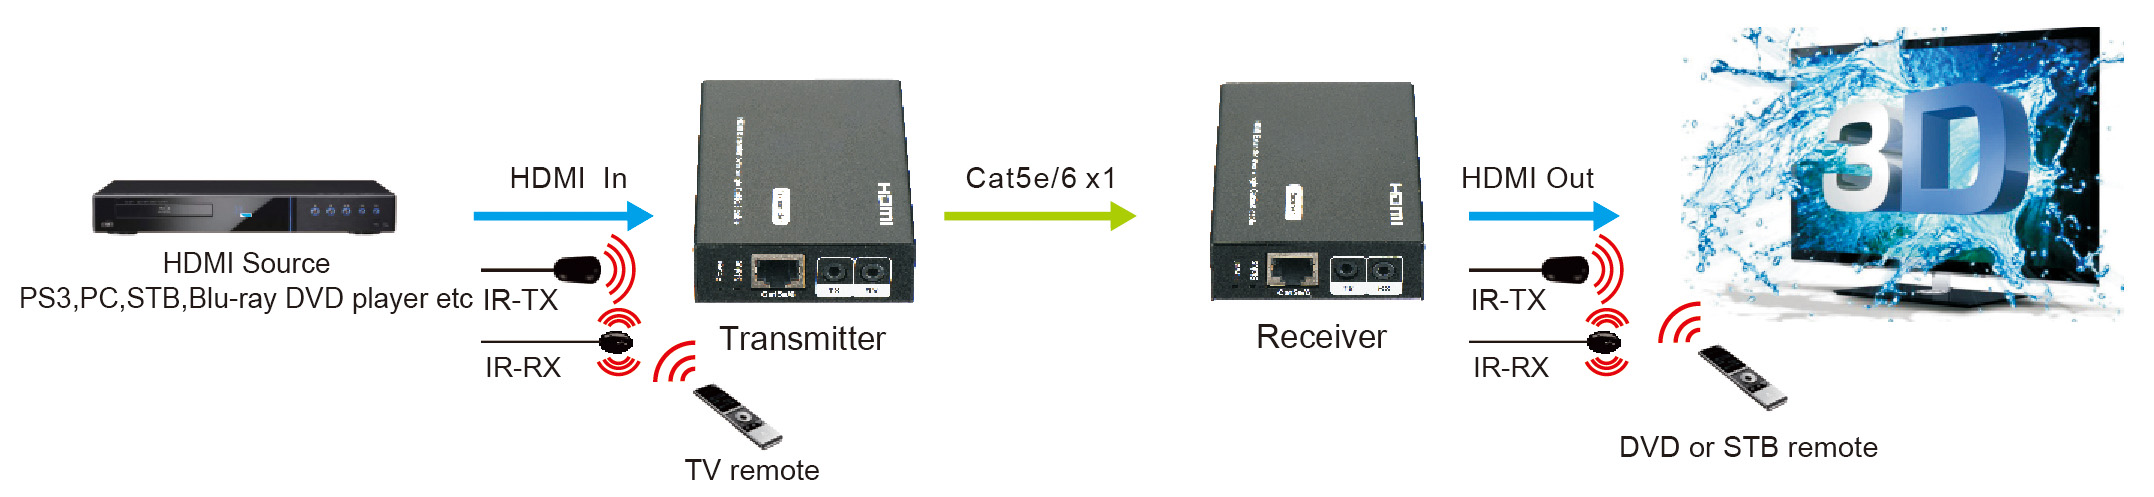 07351044_wiringdiagram pro2 hdc6edid hdmi over single cat6 extender with foxtel ir foxtel wiring diagram at crackthecode.co